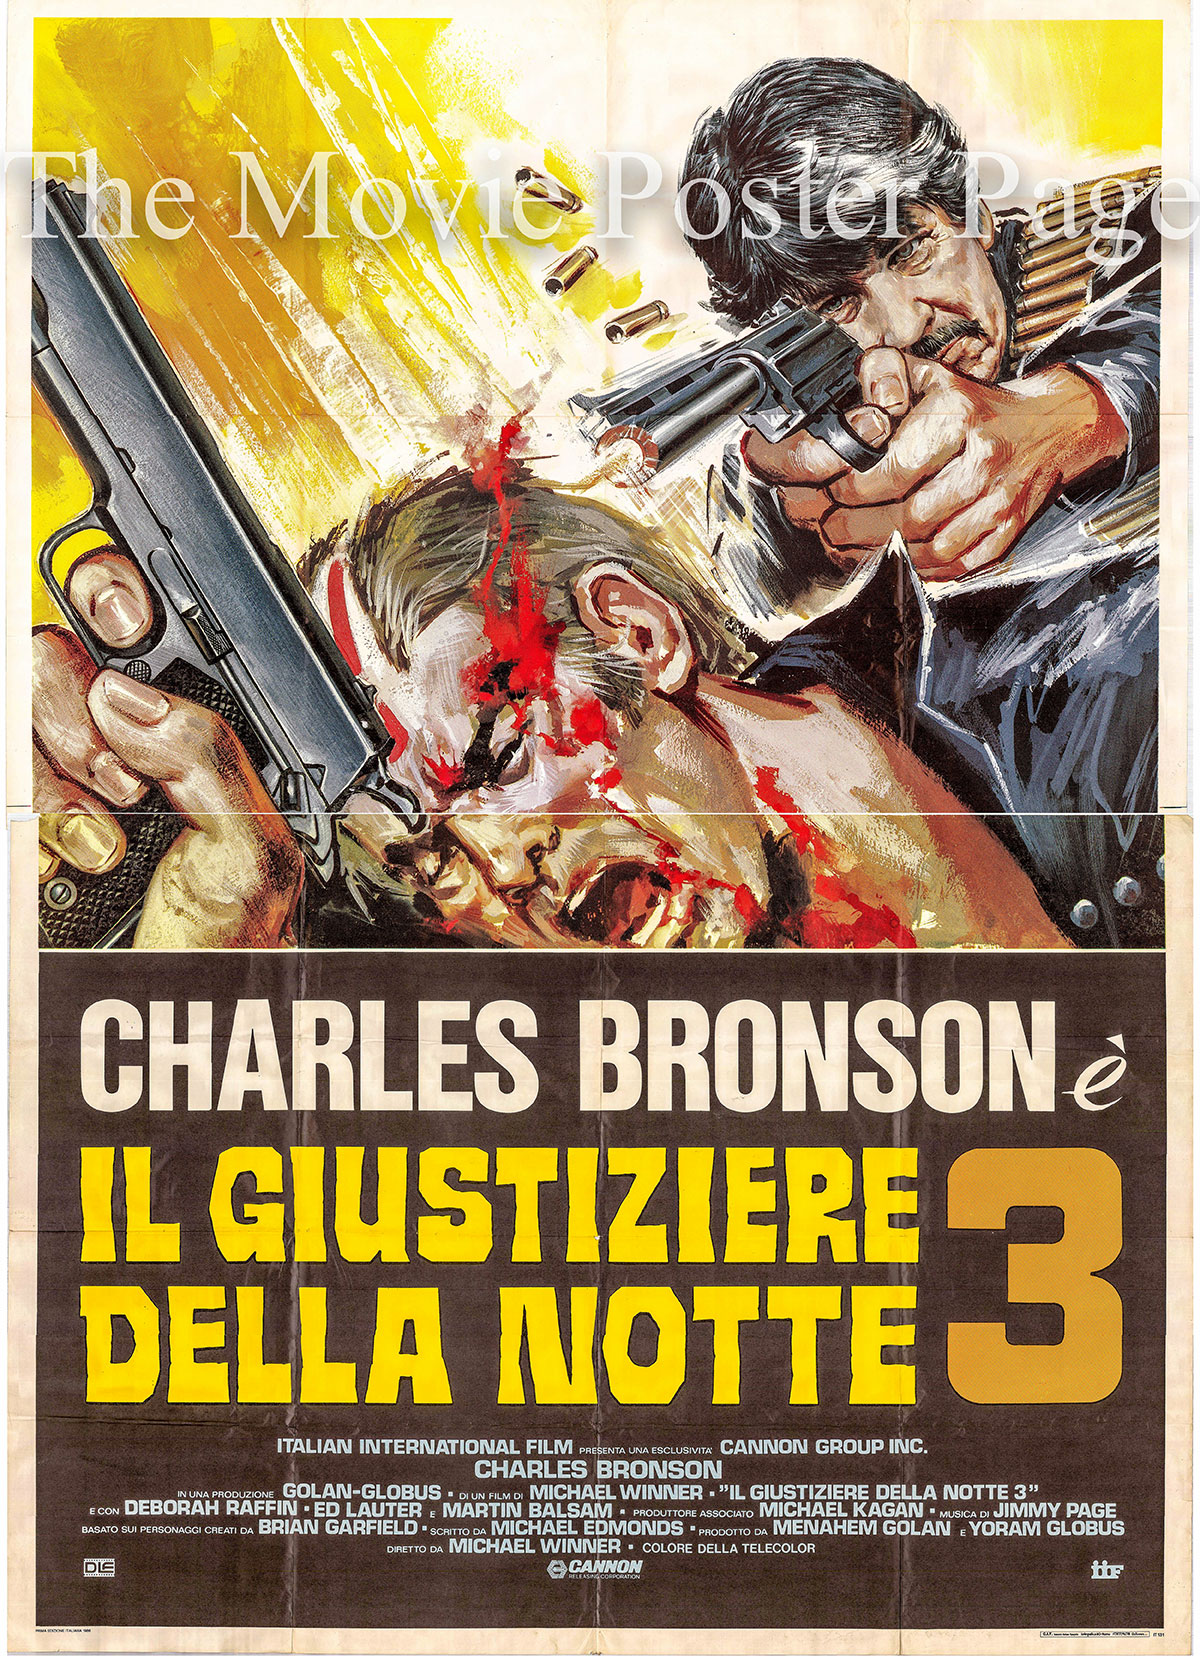 Pictured is an Italian four-sheet promotional poster for the 1985 Michael Winner film Death Wish 3 starring Charles Bronson.